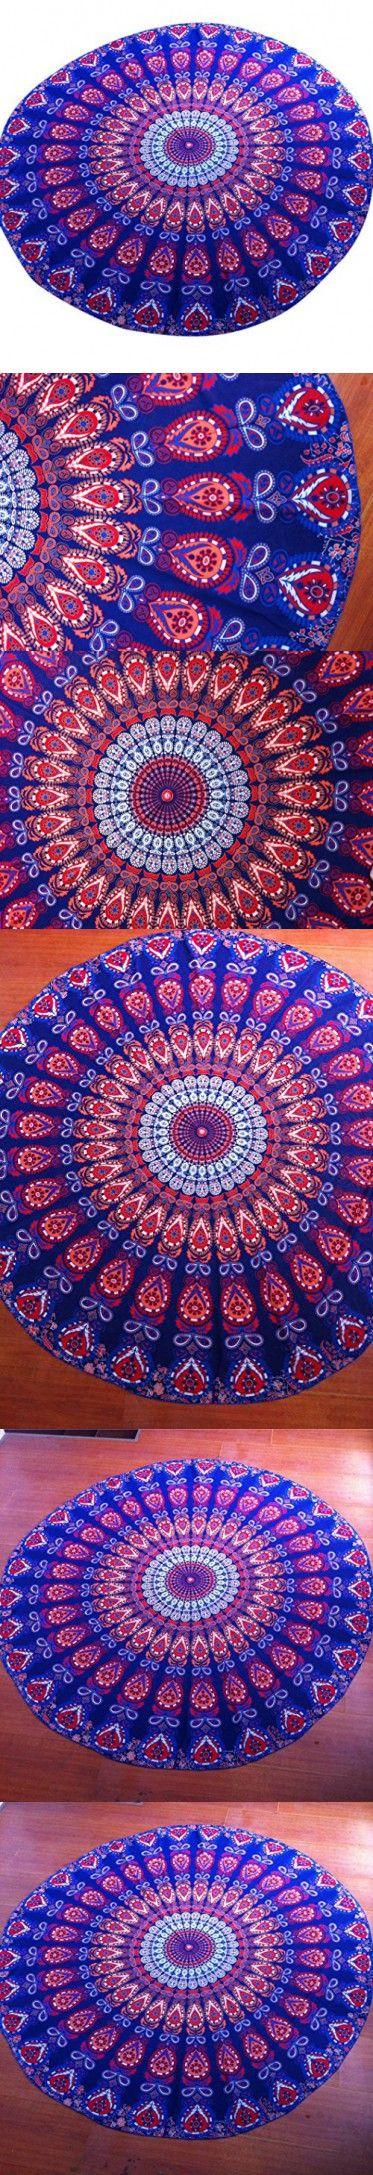 Shufua Durable and Soft Tablecloth Beach Towel , Hippie Hippy Style Yoga Mat,Bedspread, Bed Cover, Table Cloth, Curtain,Wall Hanging,Tapestry, Blue with Orange